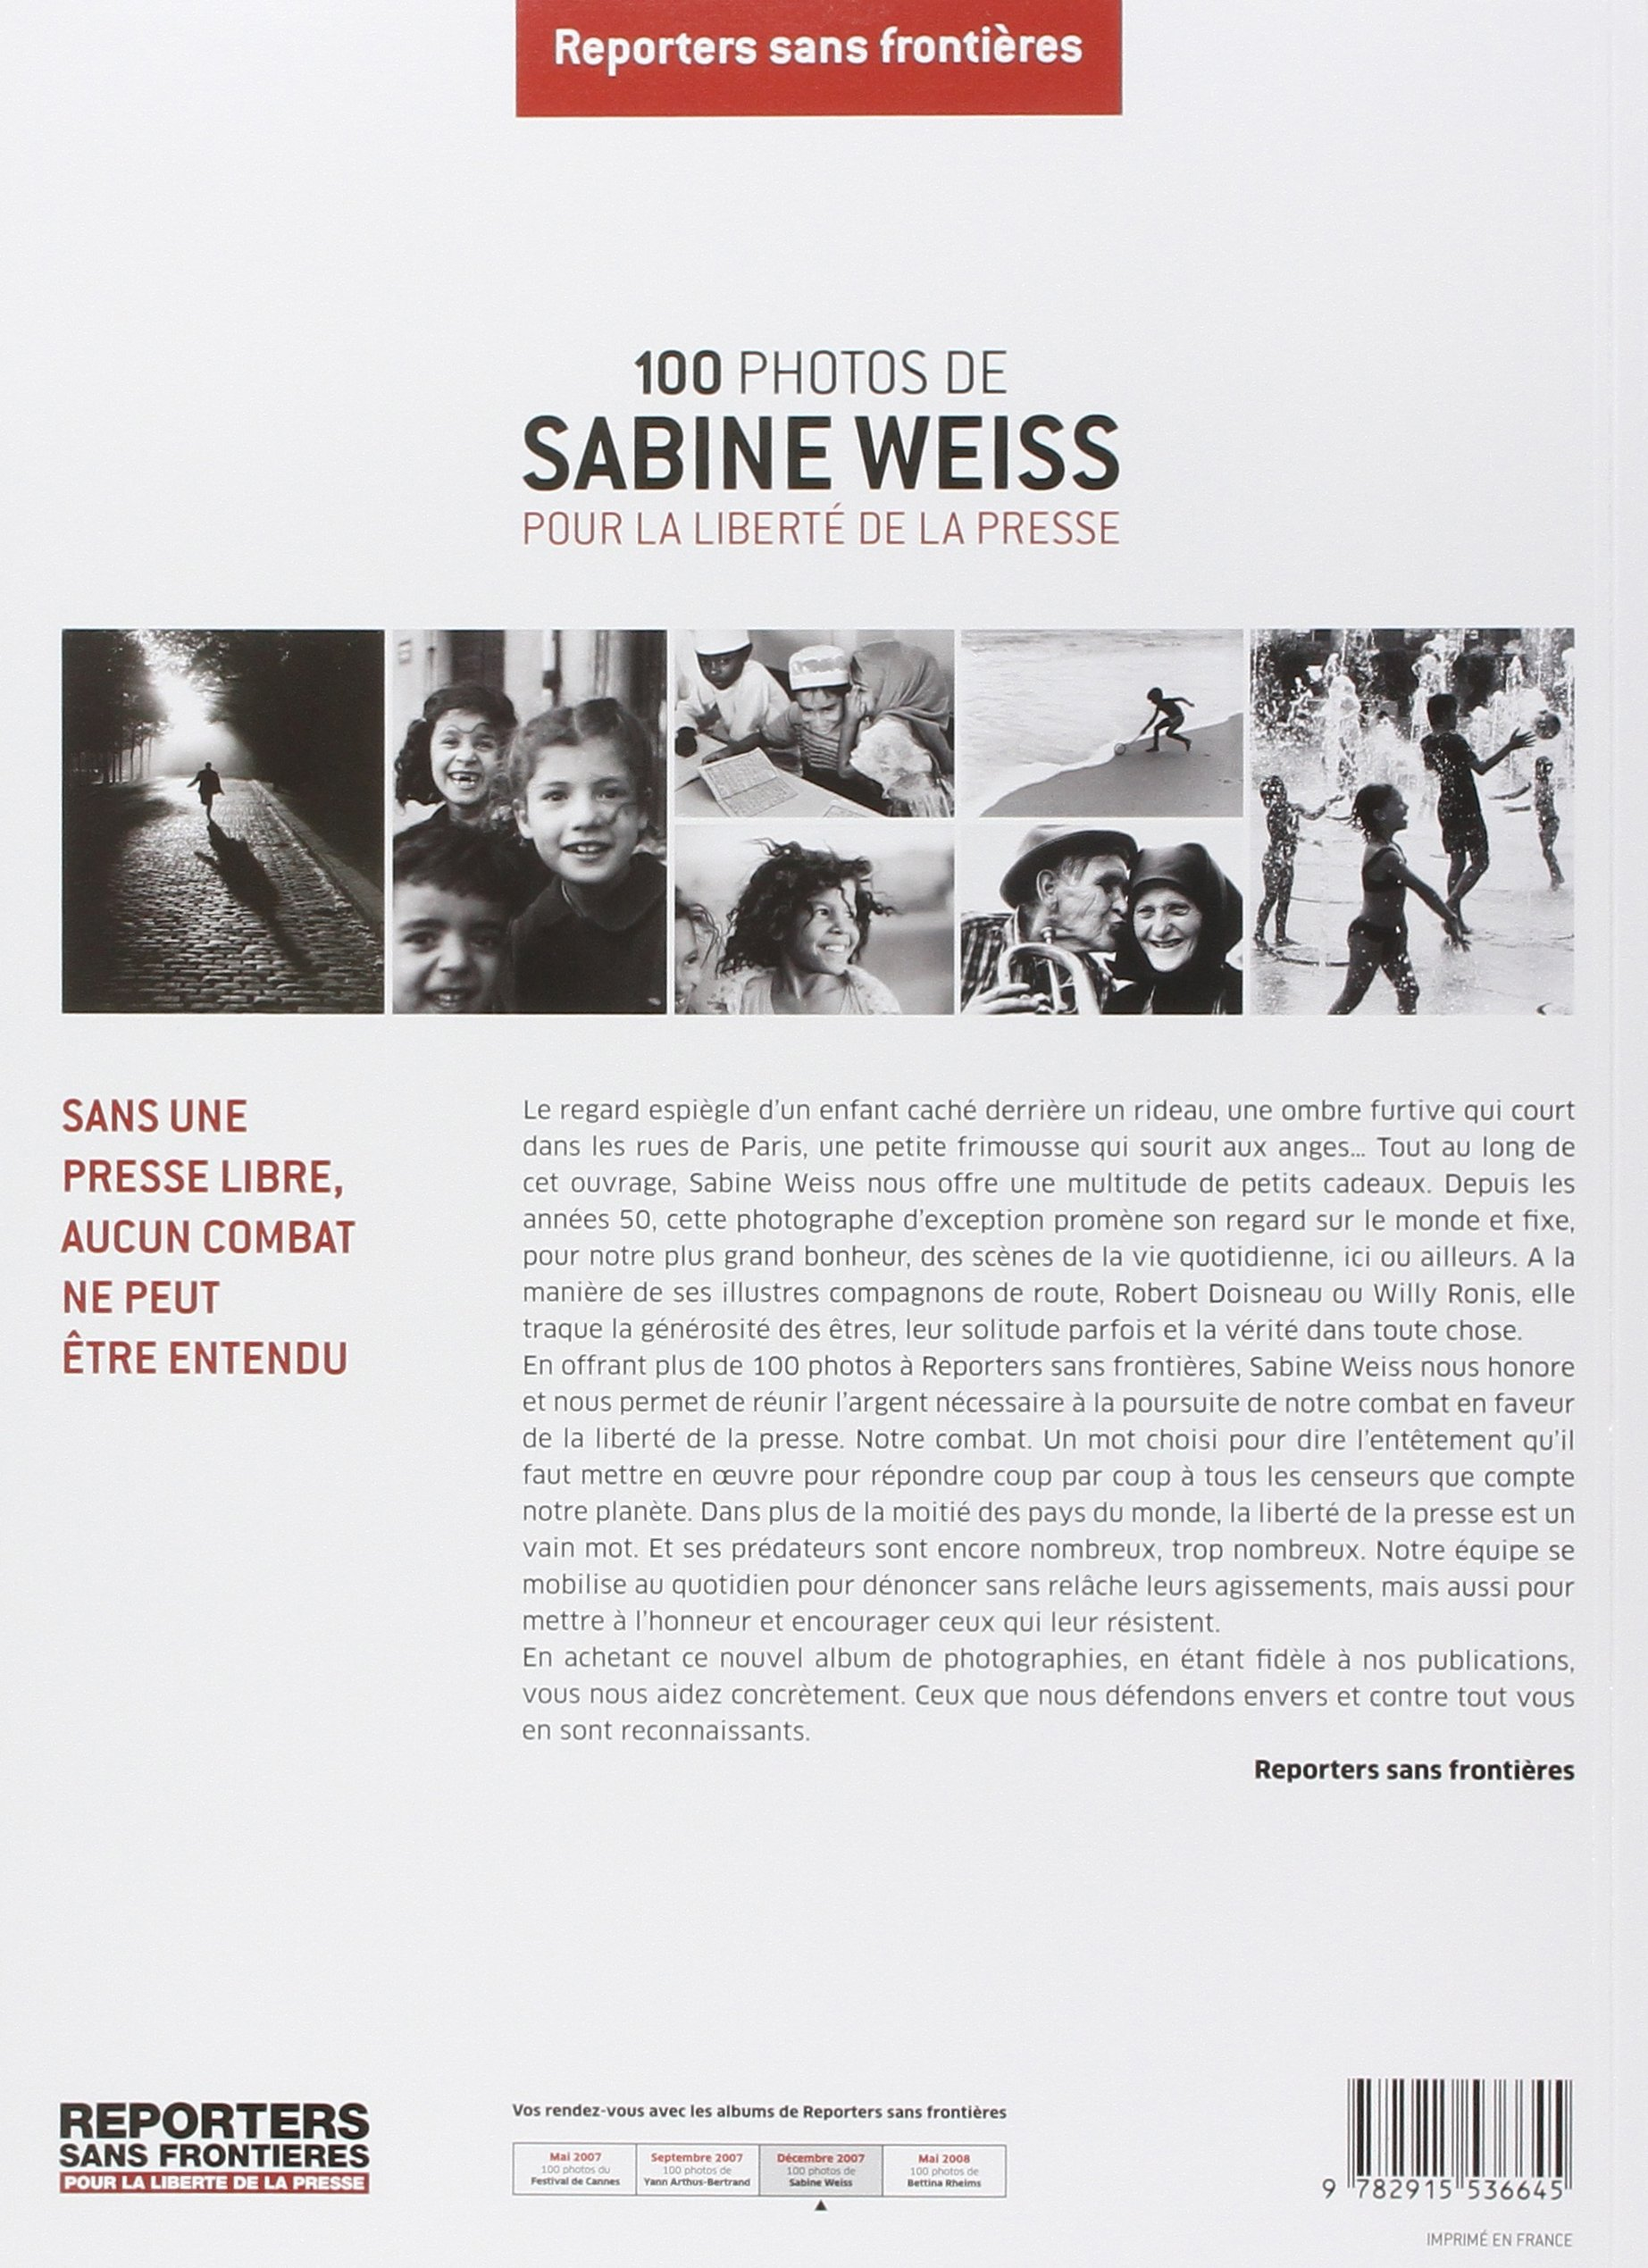 100 Photos de Sabine Weiss pour la liberté de la presse (French Edition): SABINE  WEISS: 9782915536645: Amazon.com: Books